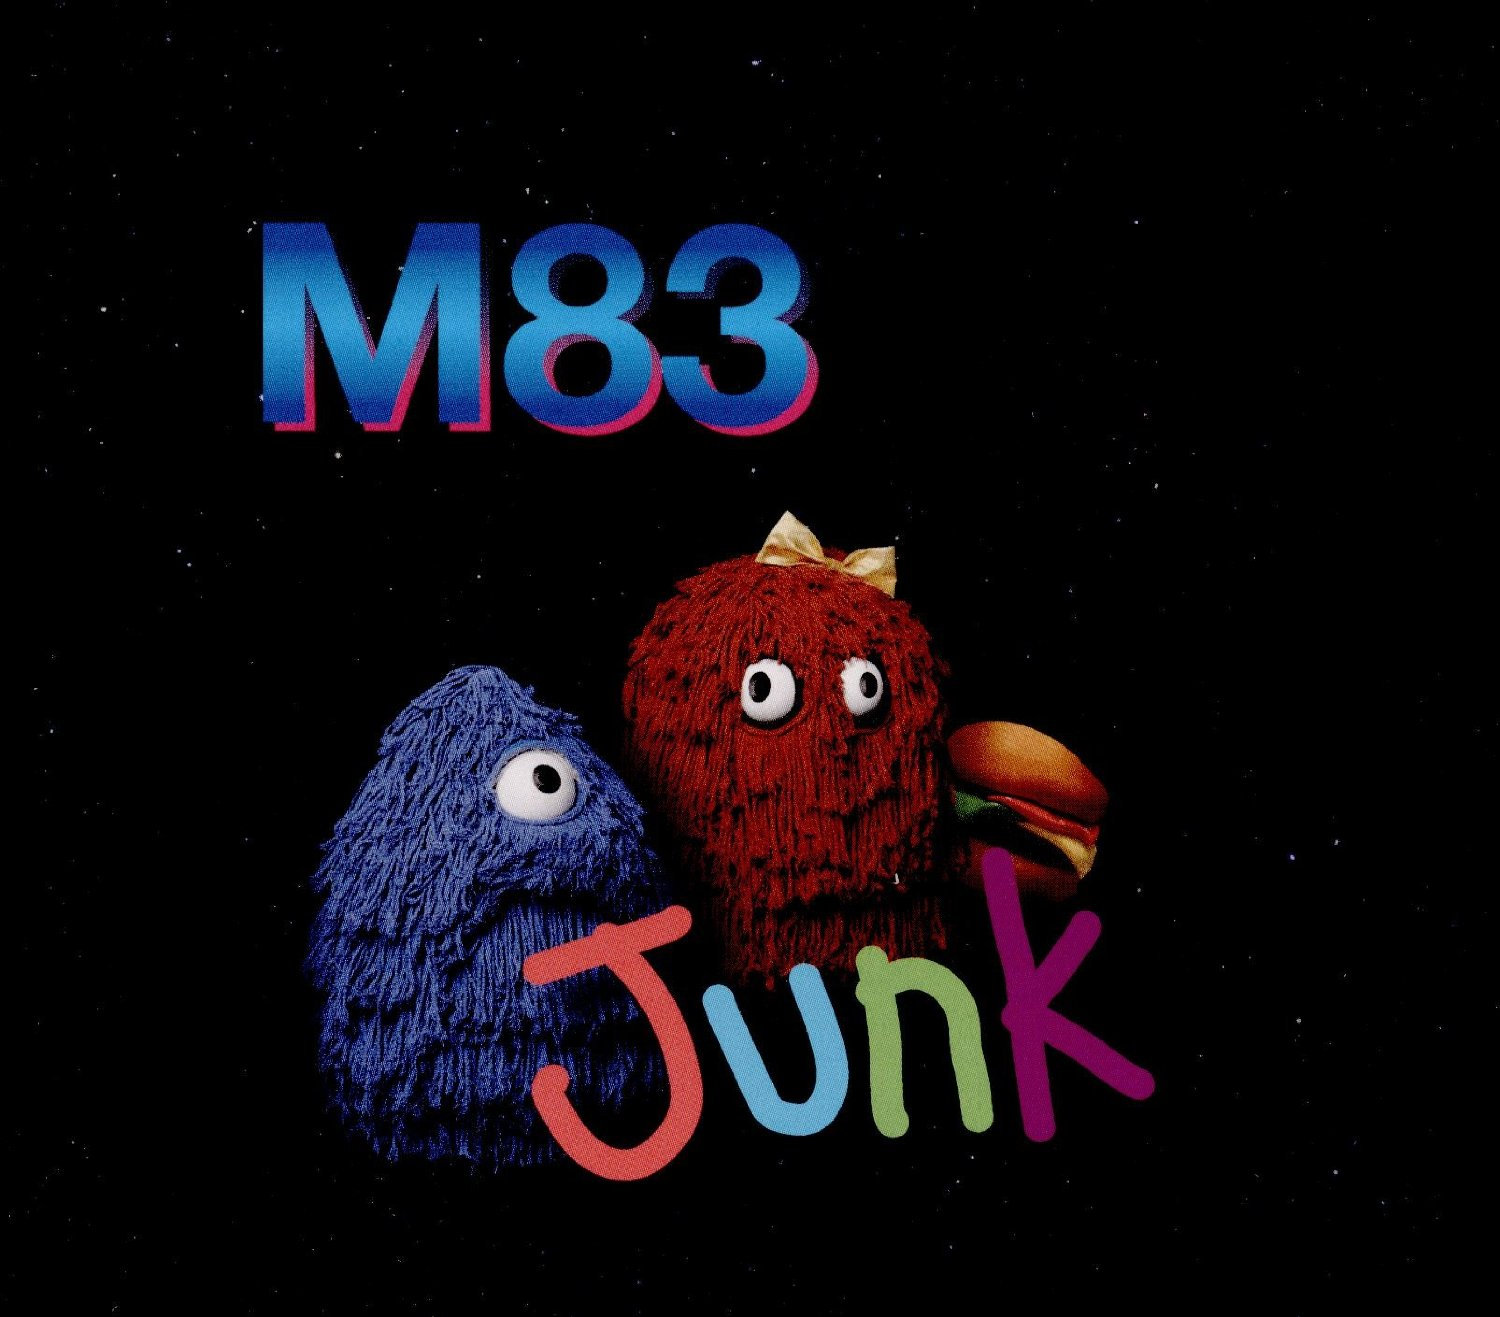 m83jukn